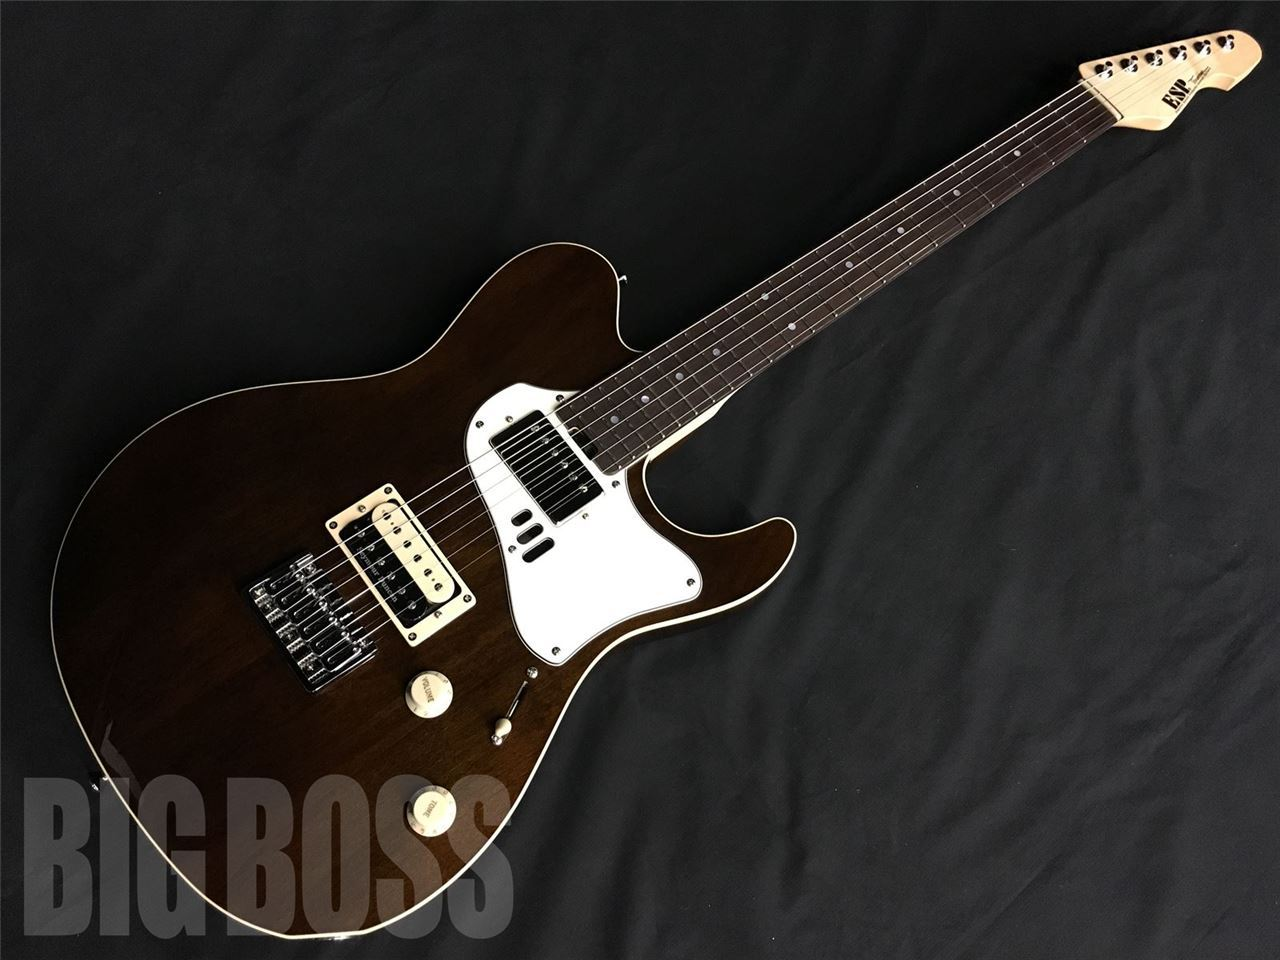 【受注生産】ESP THROBBER-STD/ R (Smorky Brown)